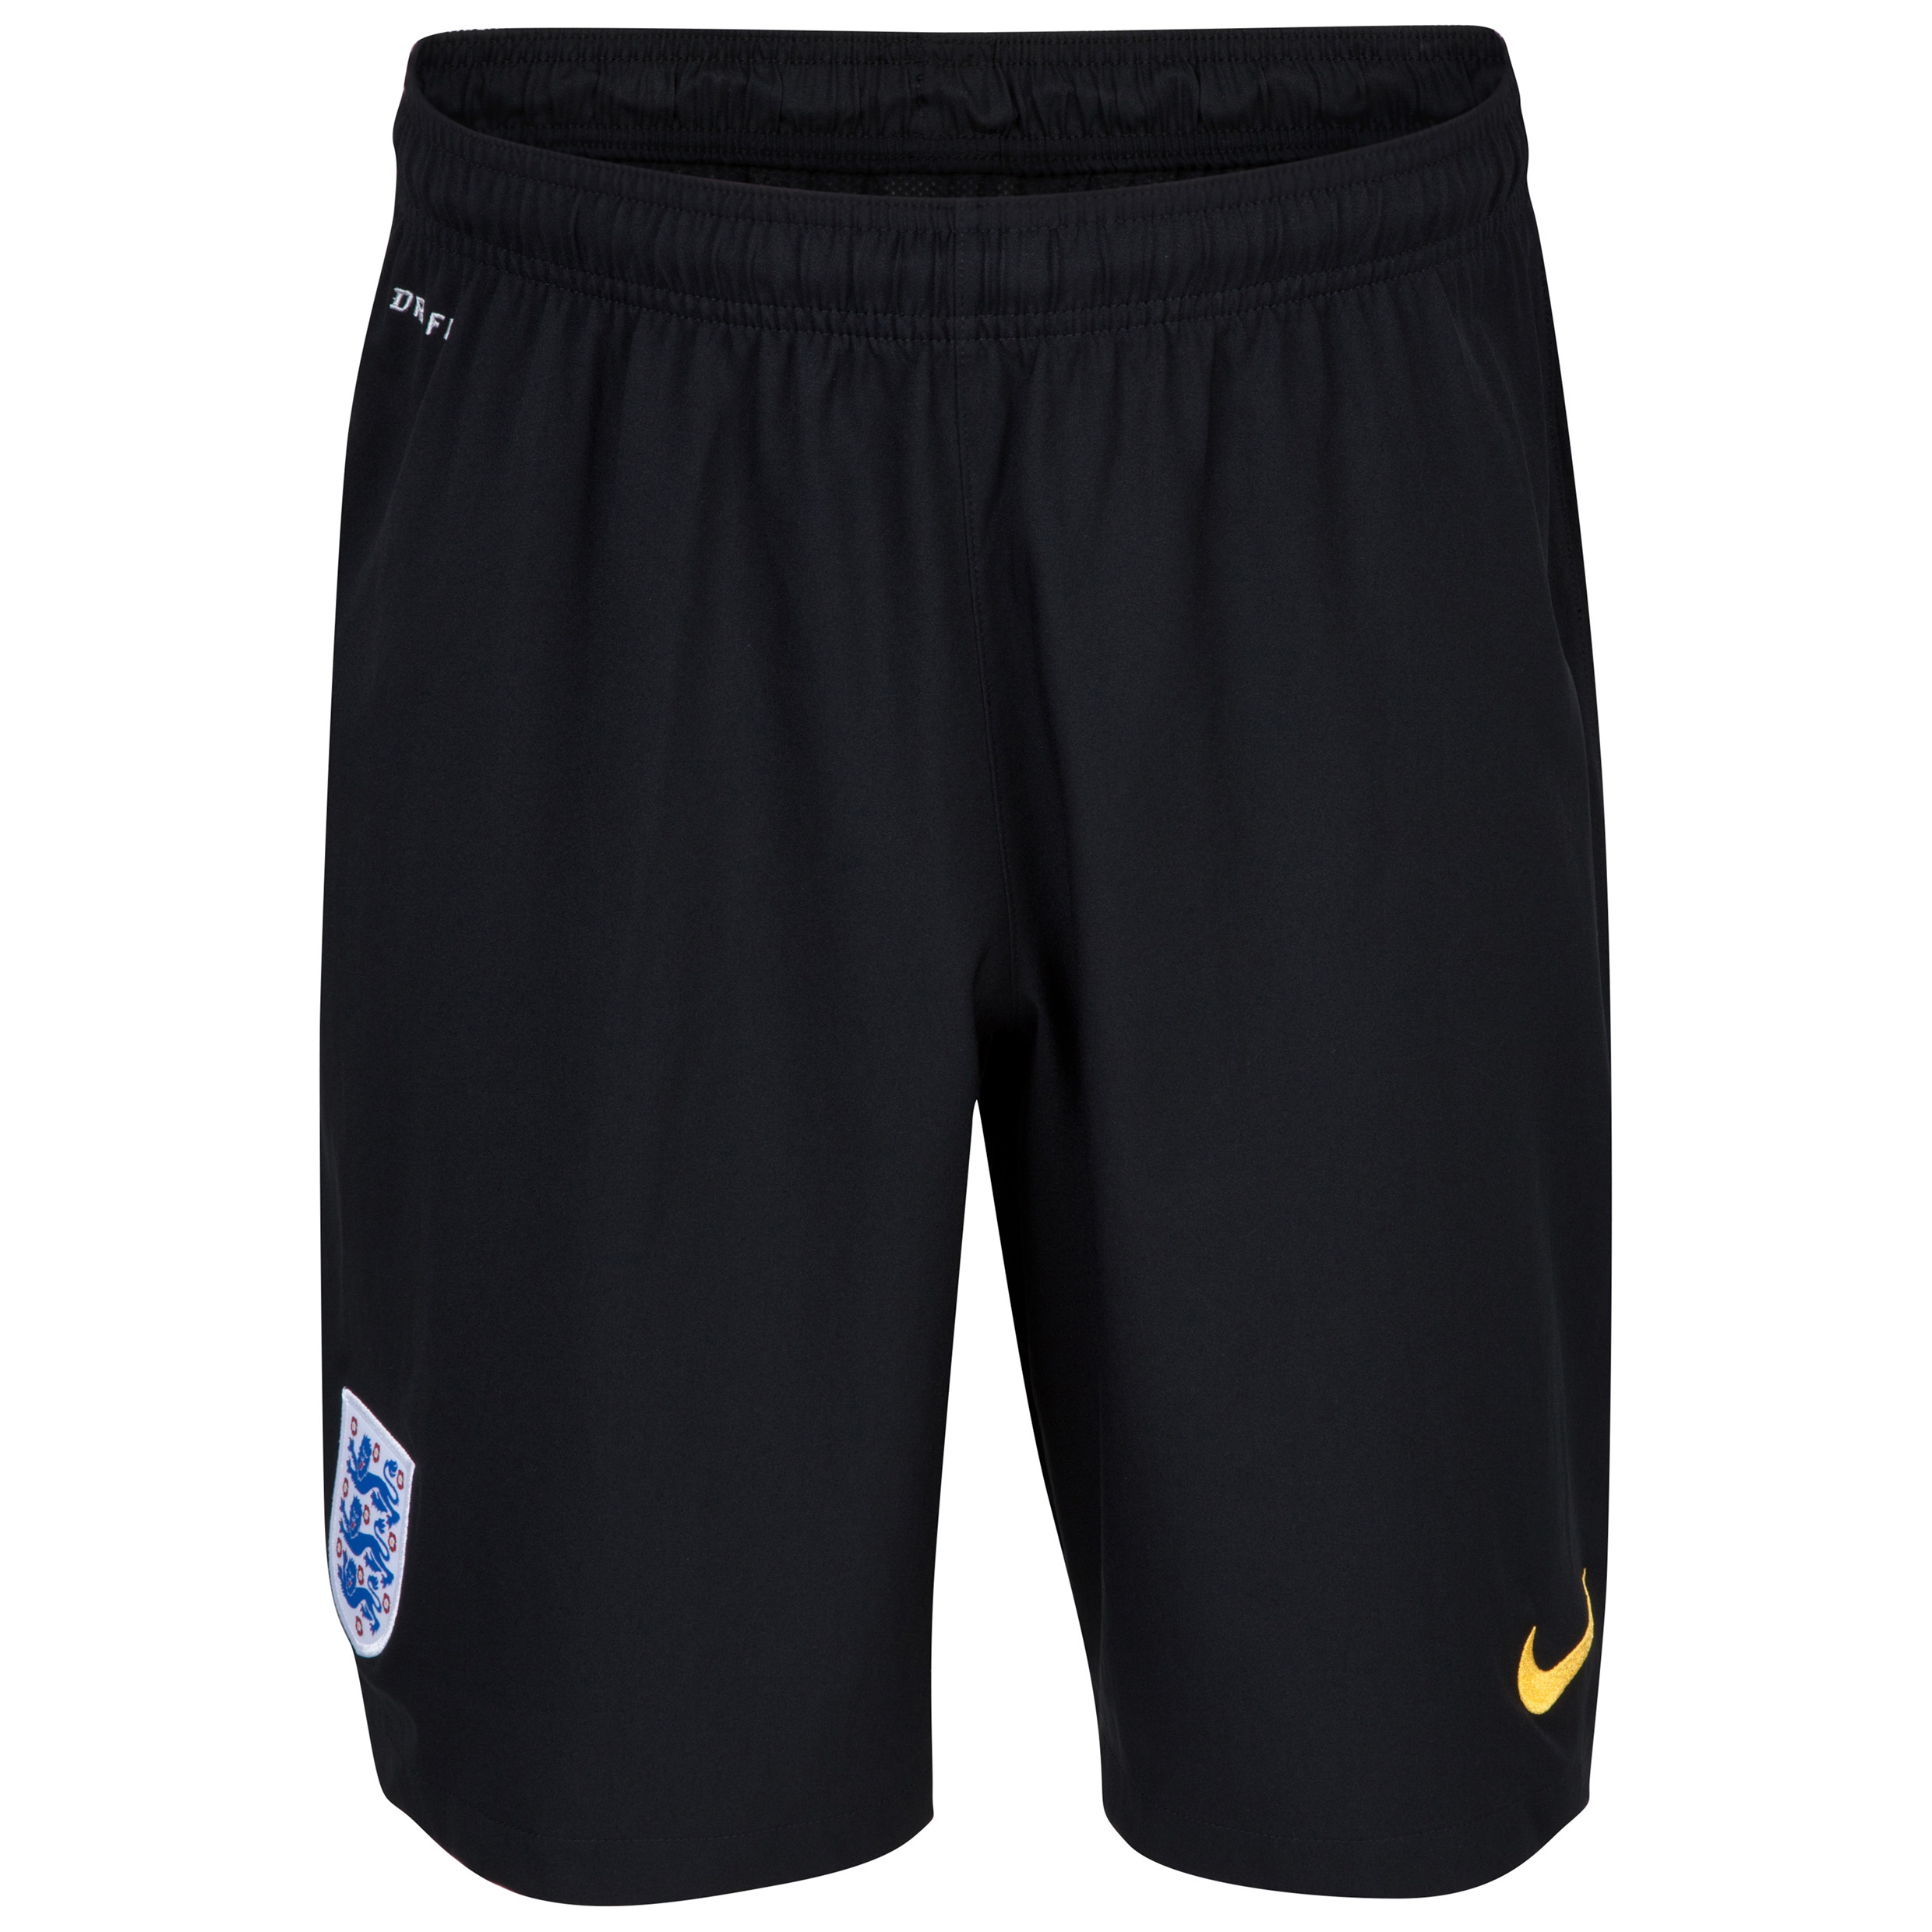 England Home Goalkeeper Shorts 2014/15 - Kids Black